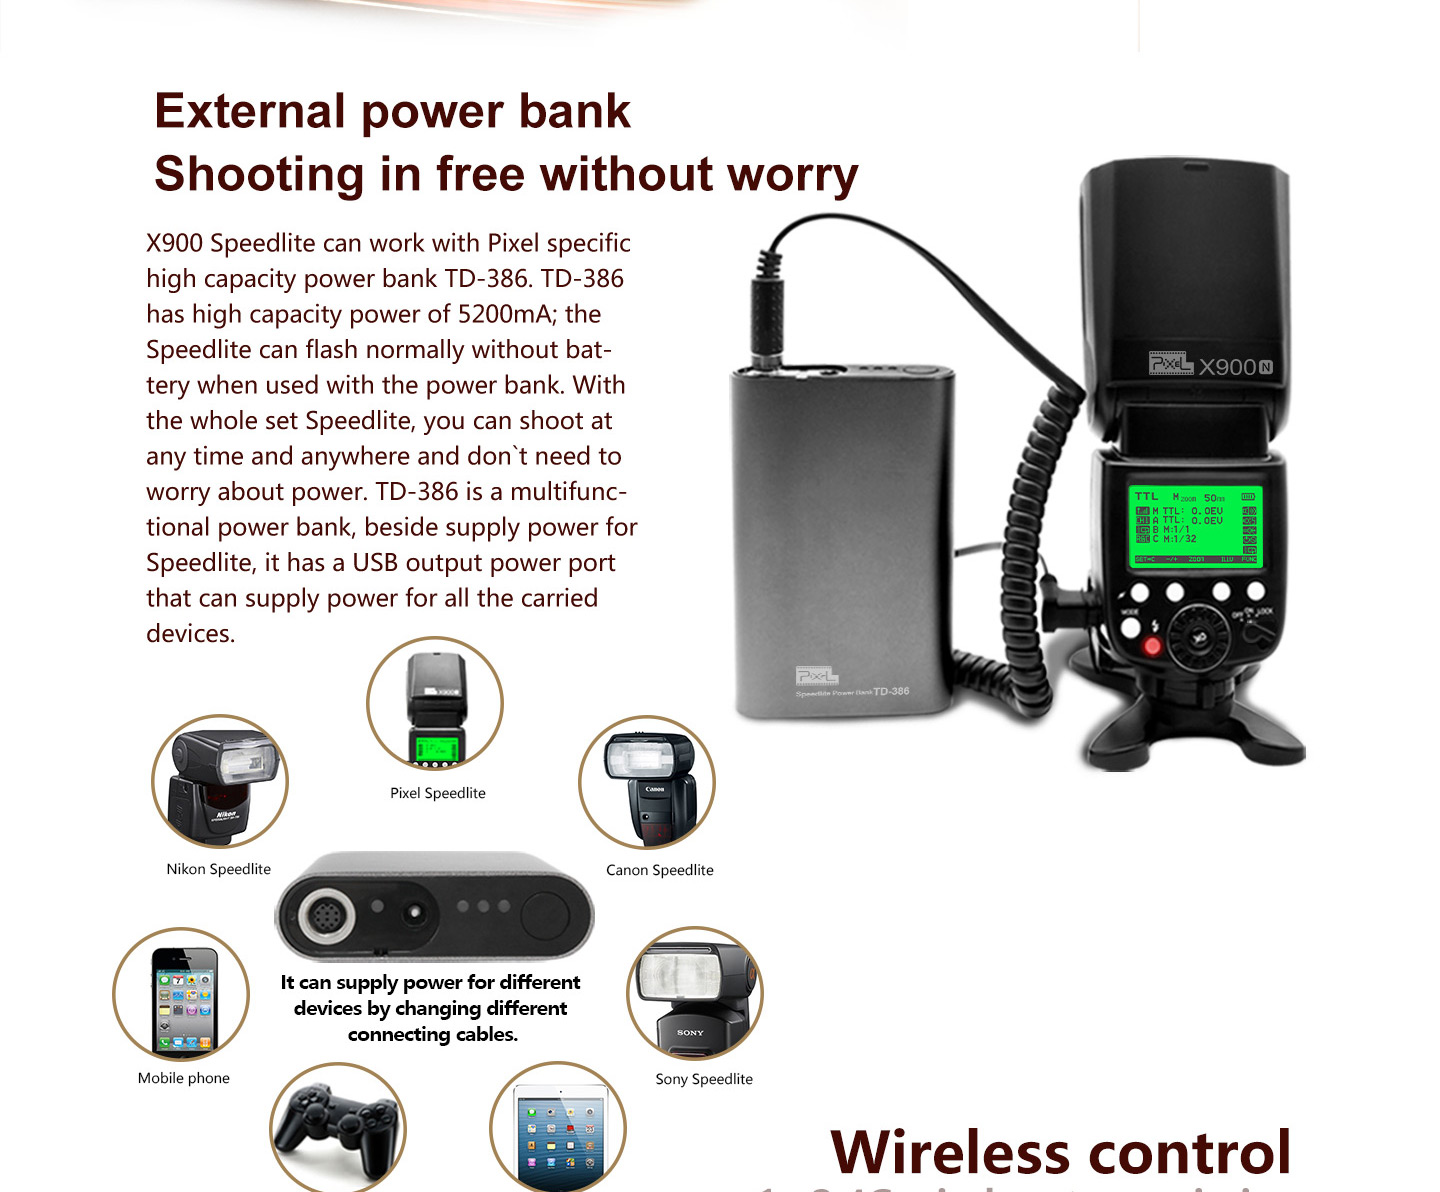 External power bank Shooting in free without worry